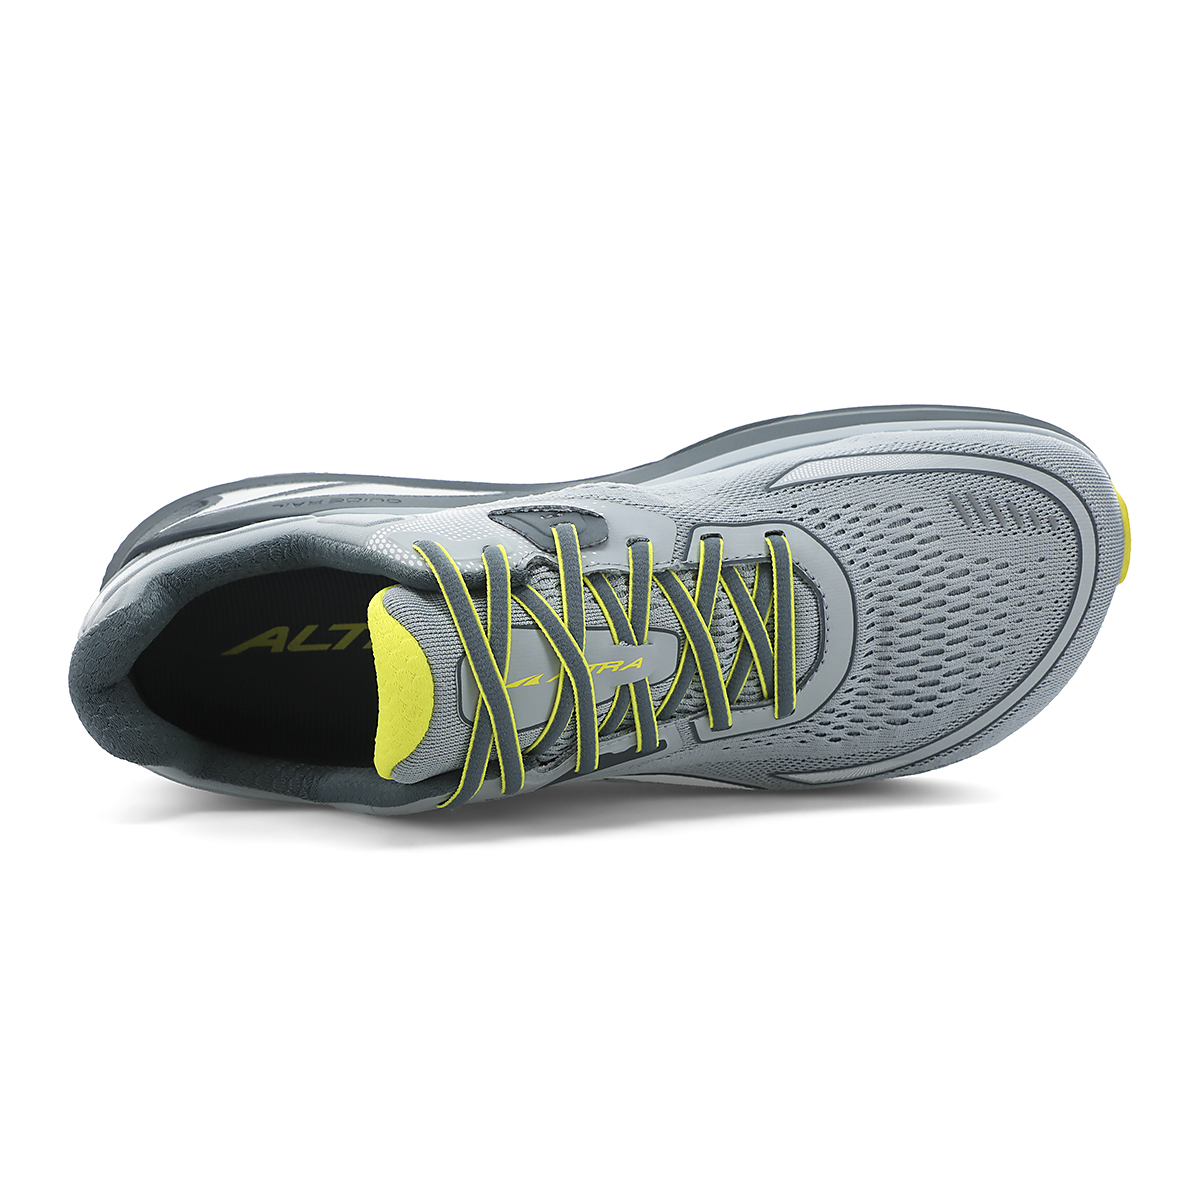 Men's Altra Paradigm 6 Running Shoe - Color: Gray/Lime - Size: 7 - Width: Regular, Gray/Lime, large, image 3